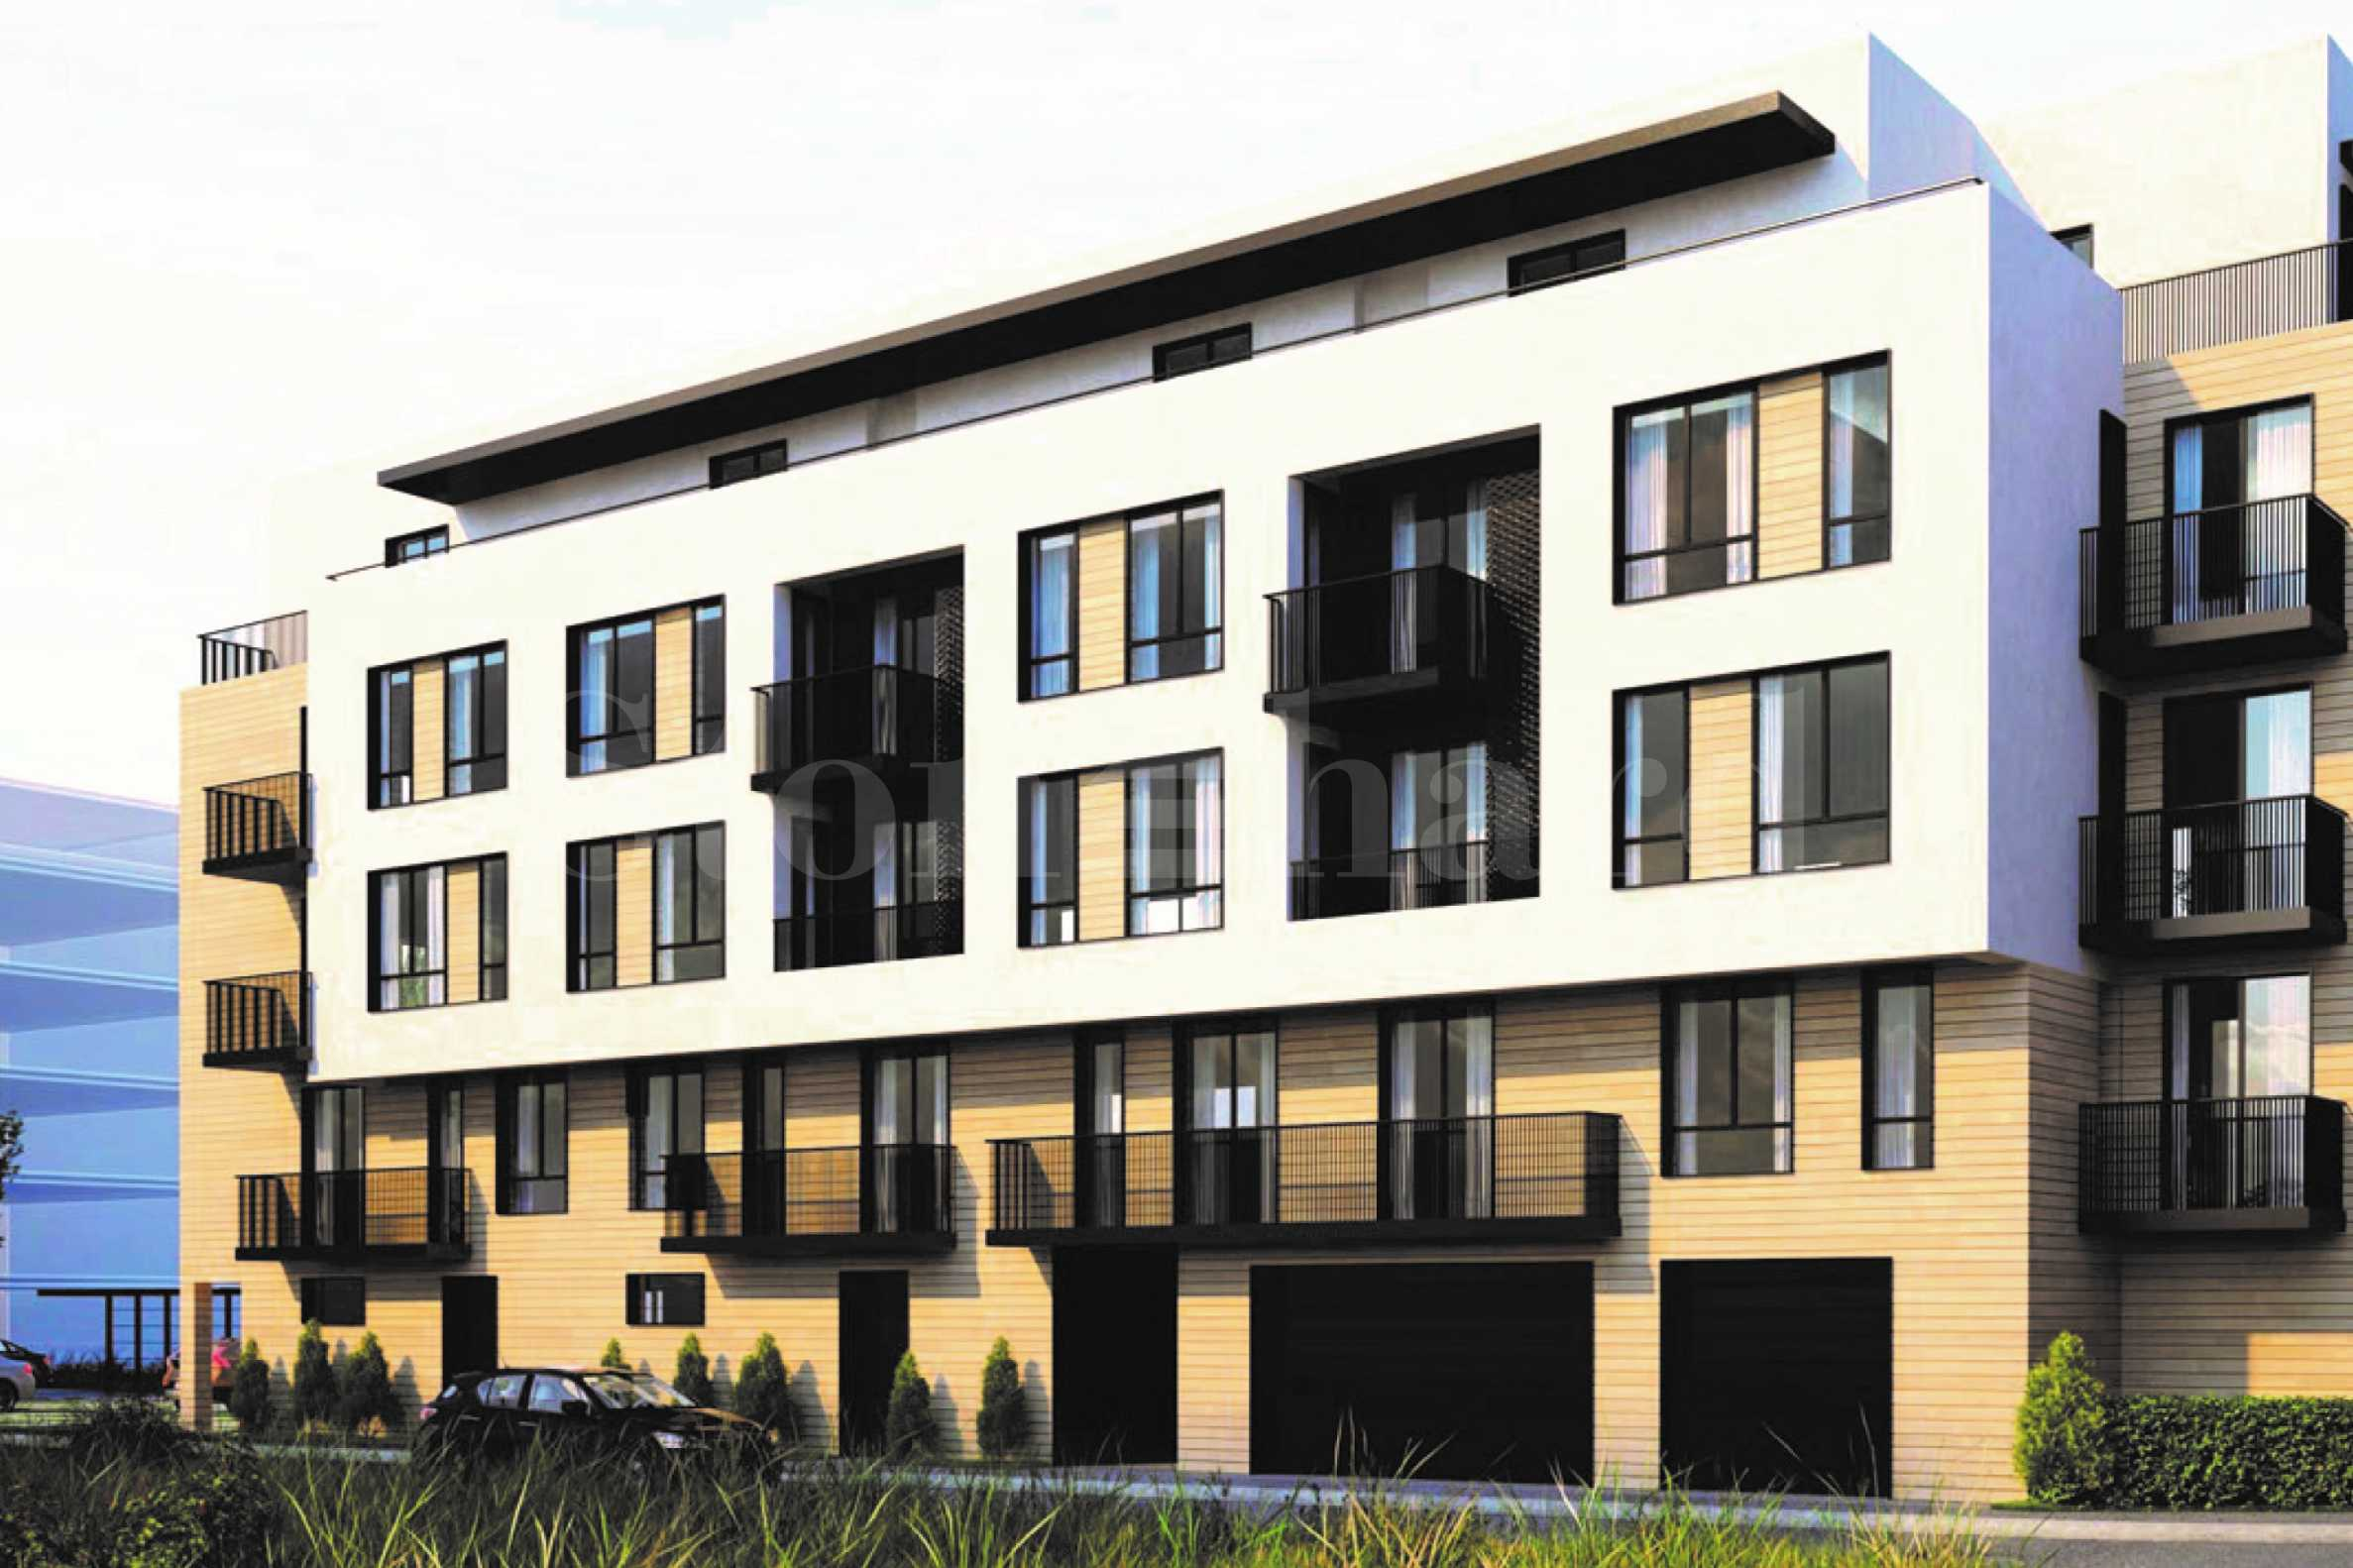 Residential building, new construction with different types of apartments in Druzhba 12 - Stonehard